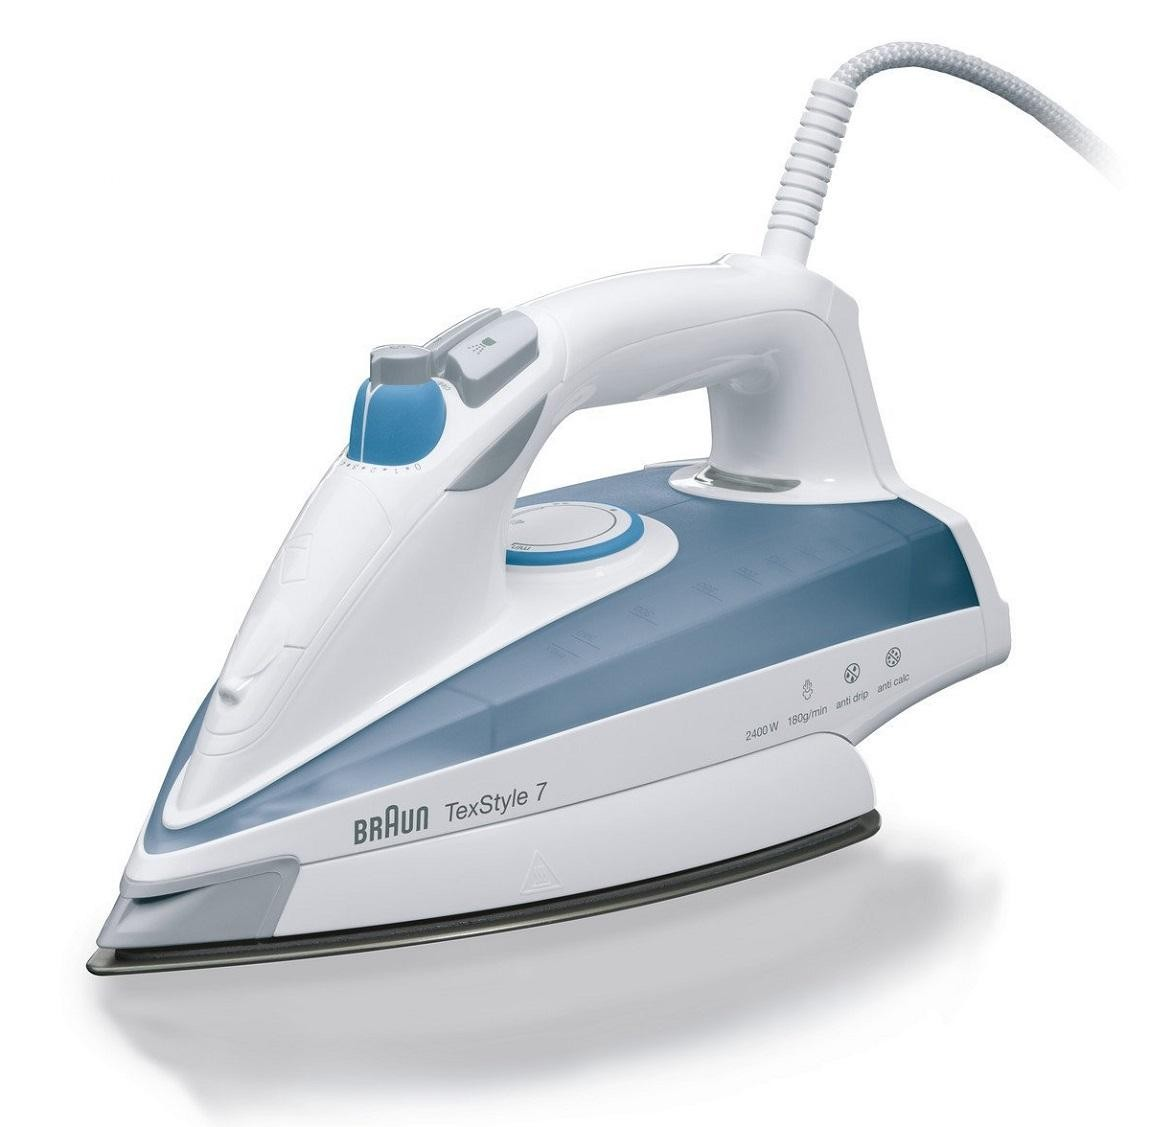 TS725A-steam-iron.jpg